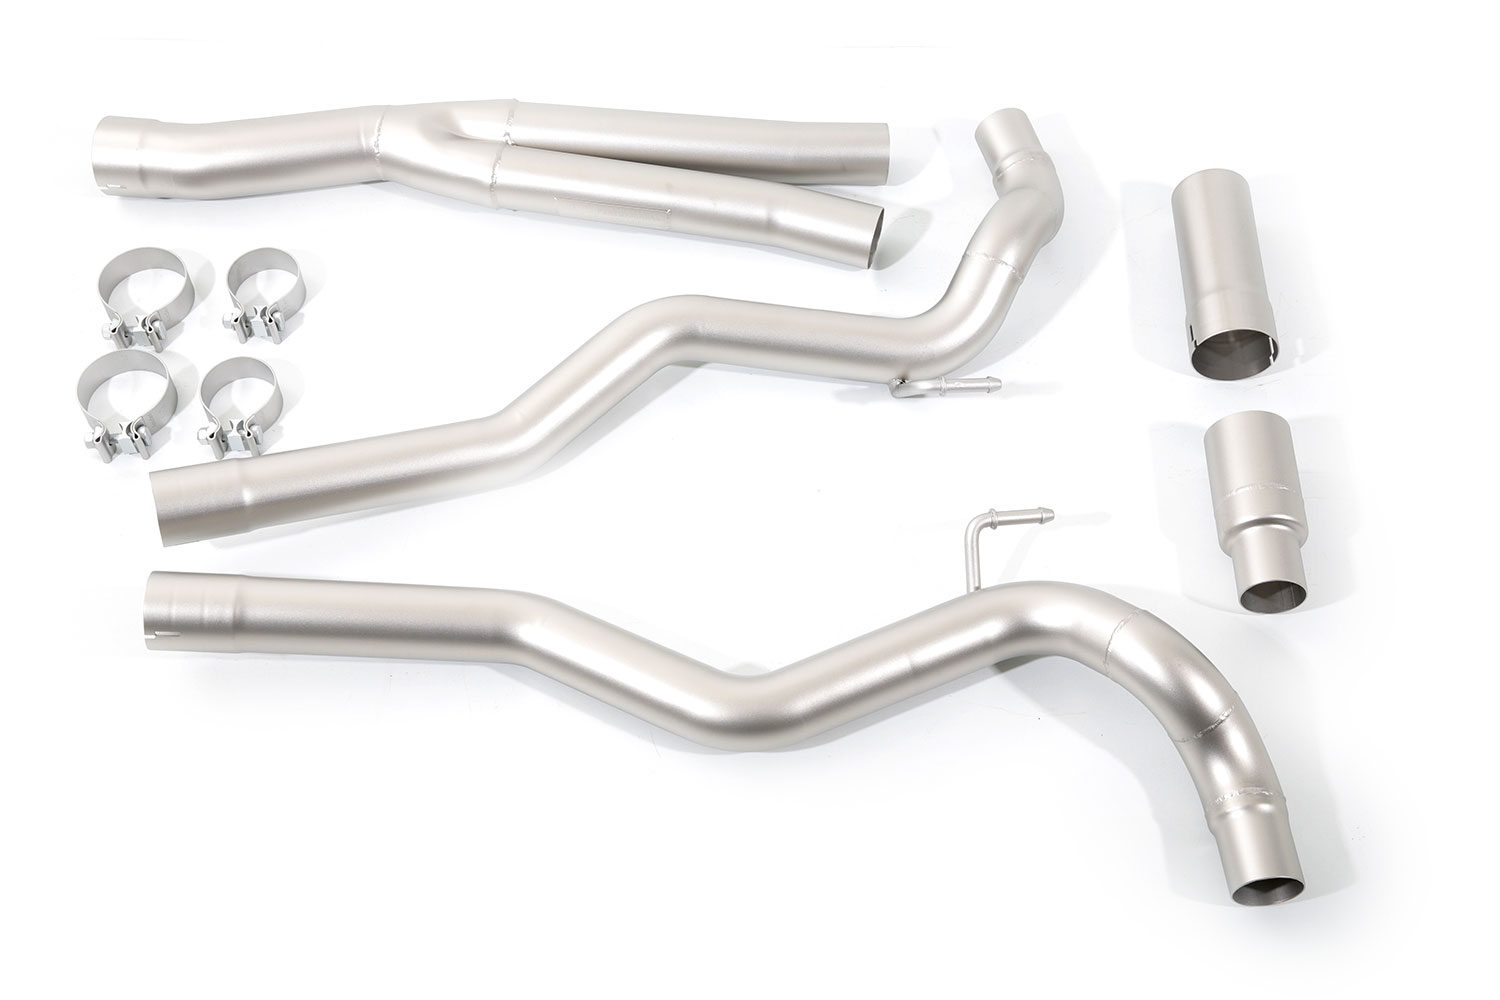 CP-e Ford Mustang EcoBoost Ausenite Mid Exhaust System